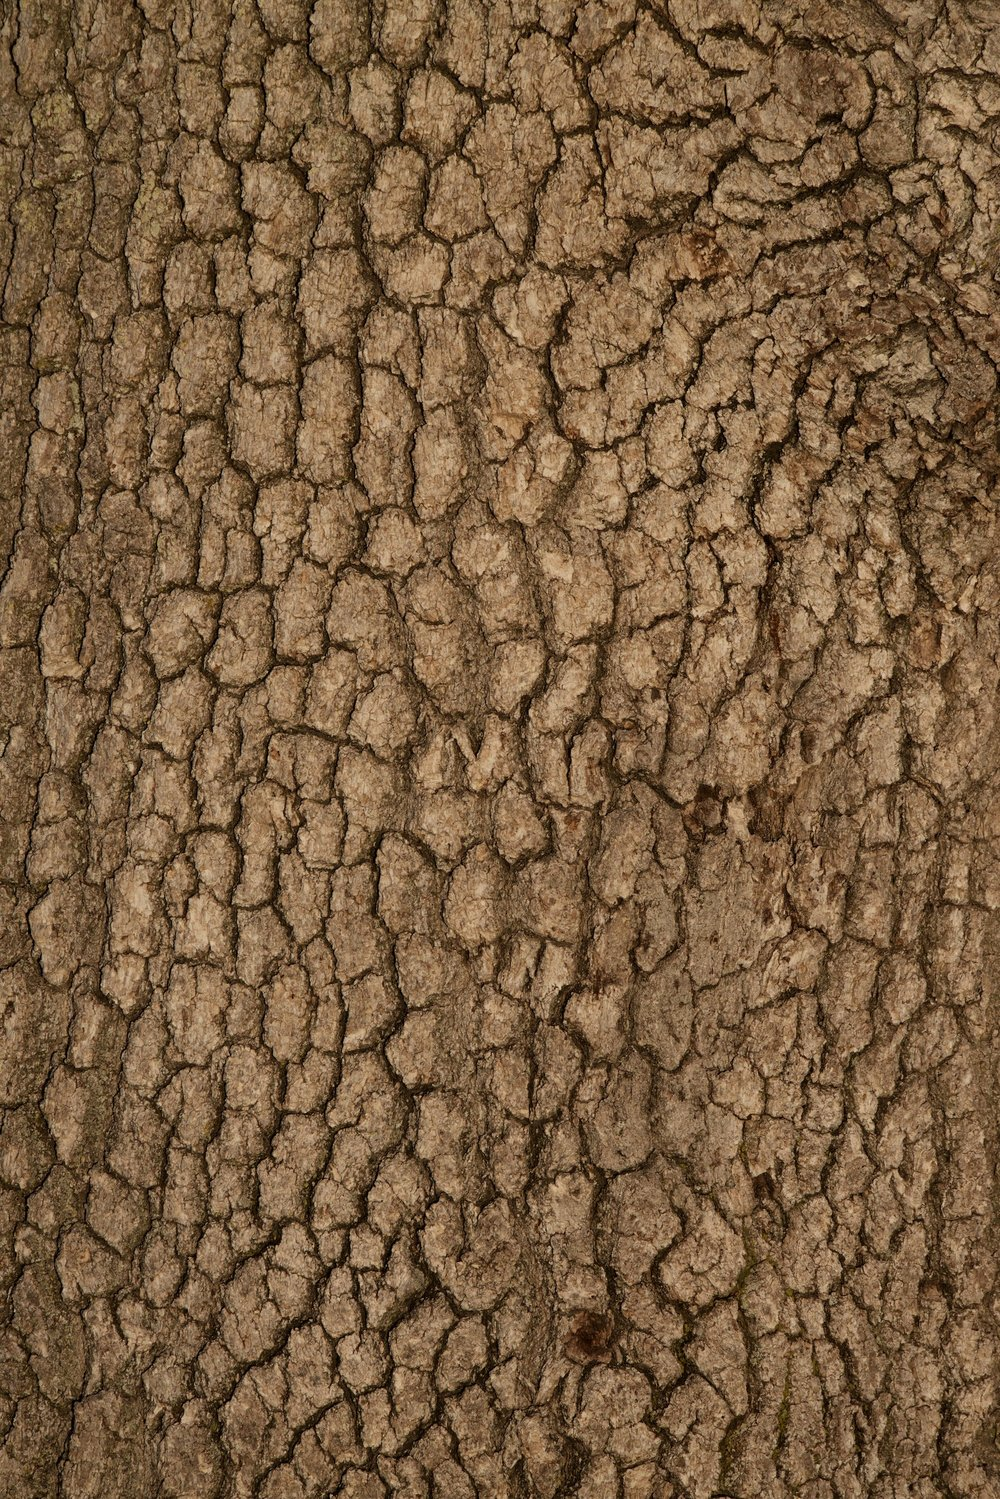 2015-0097-0166.  Bark of a Valley Oak, Stanford, California.